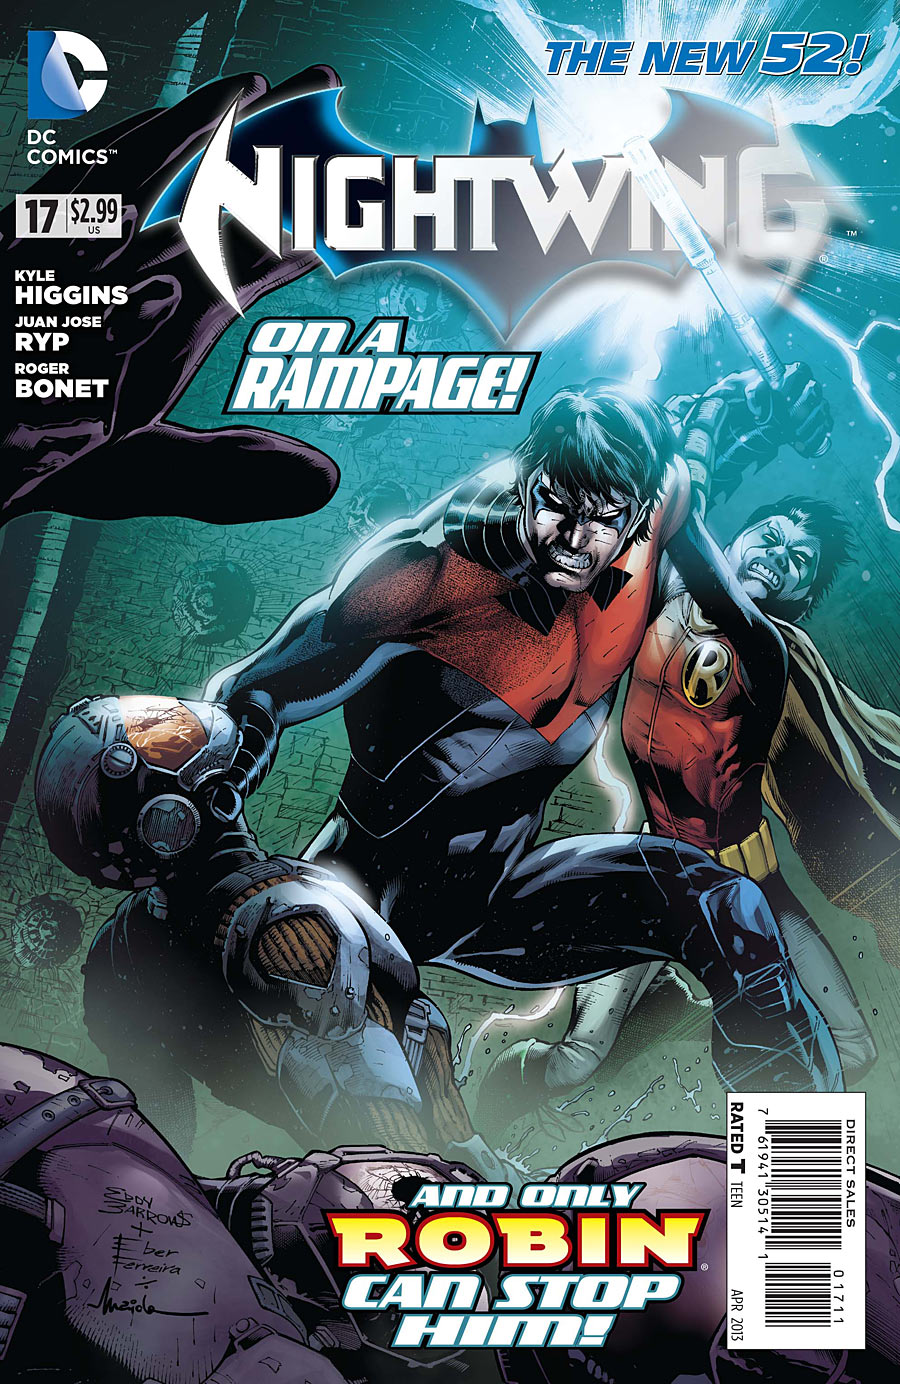 Nightwing (The New 52) #17